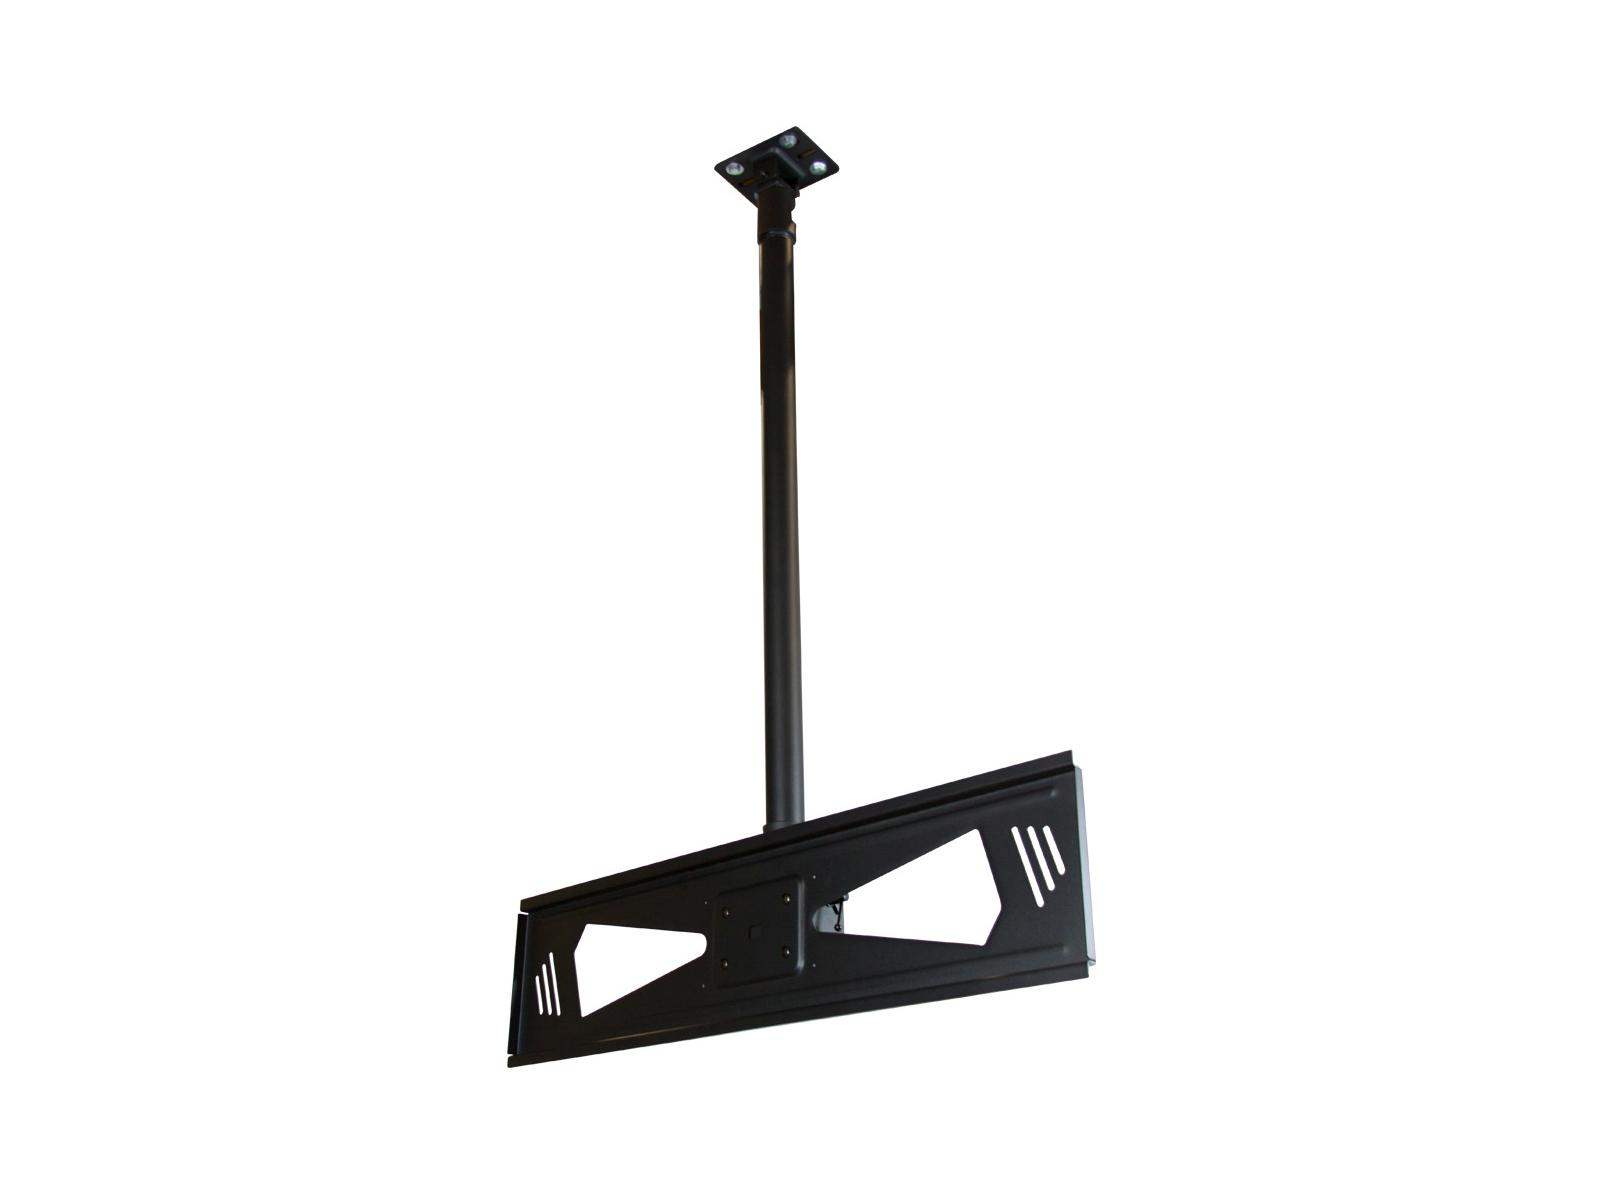 ViewZ VZ-CMKiT-04 Universal Ceiling Mount Kit for 37 inch to 70 inch CCTV and Vdeo Wall Monitors